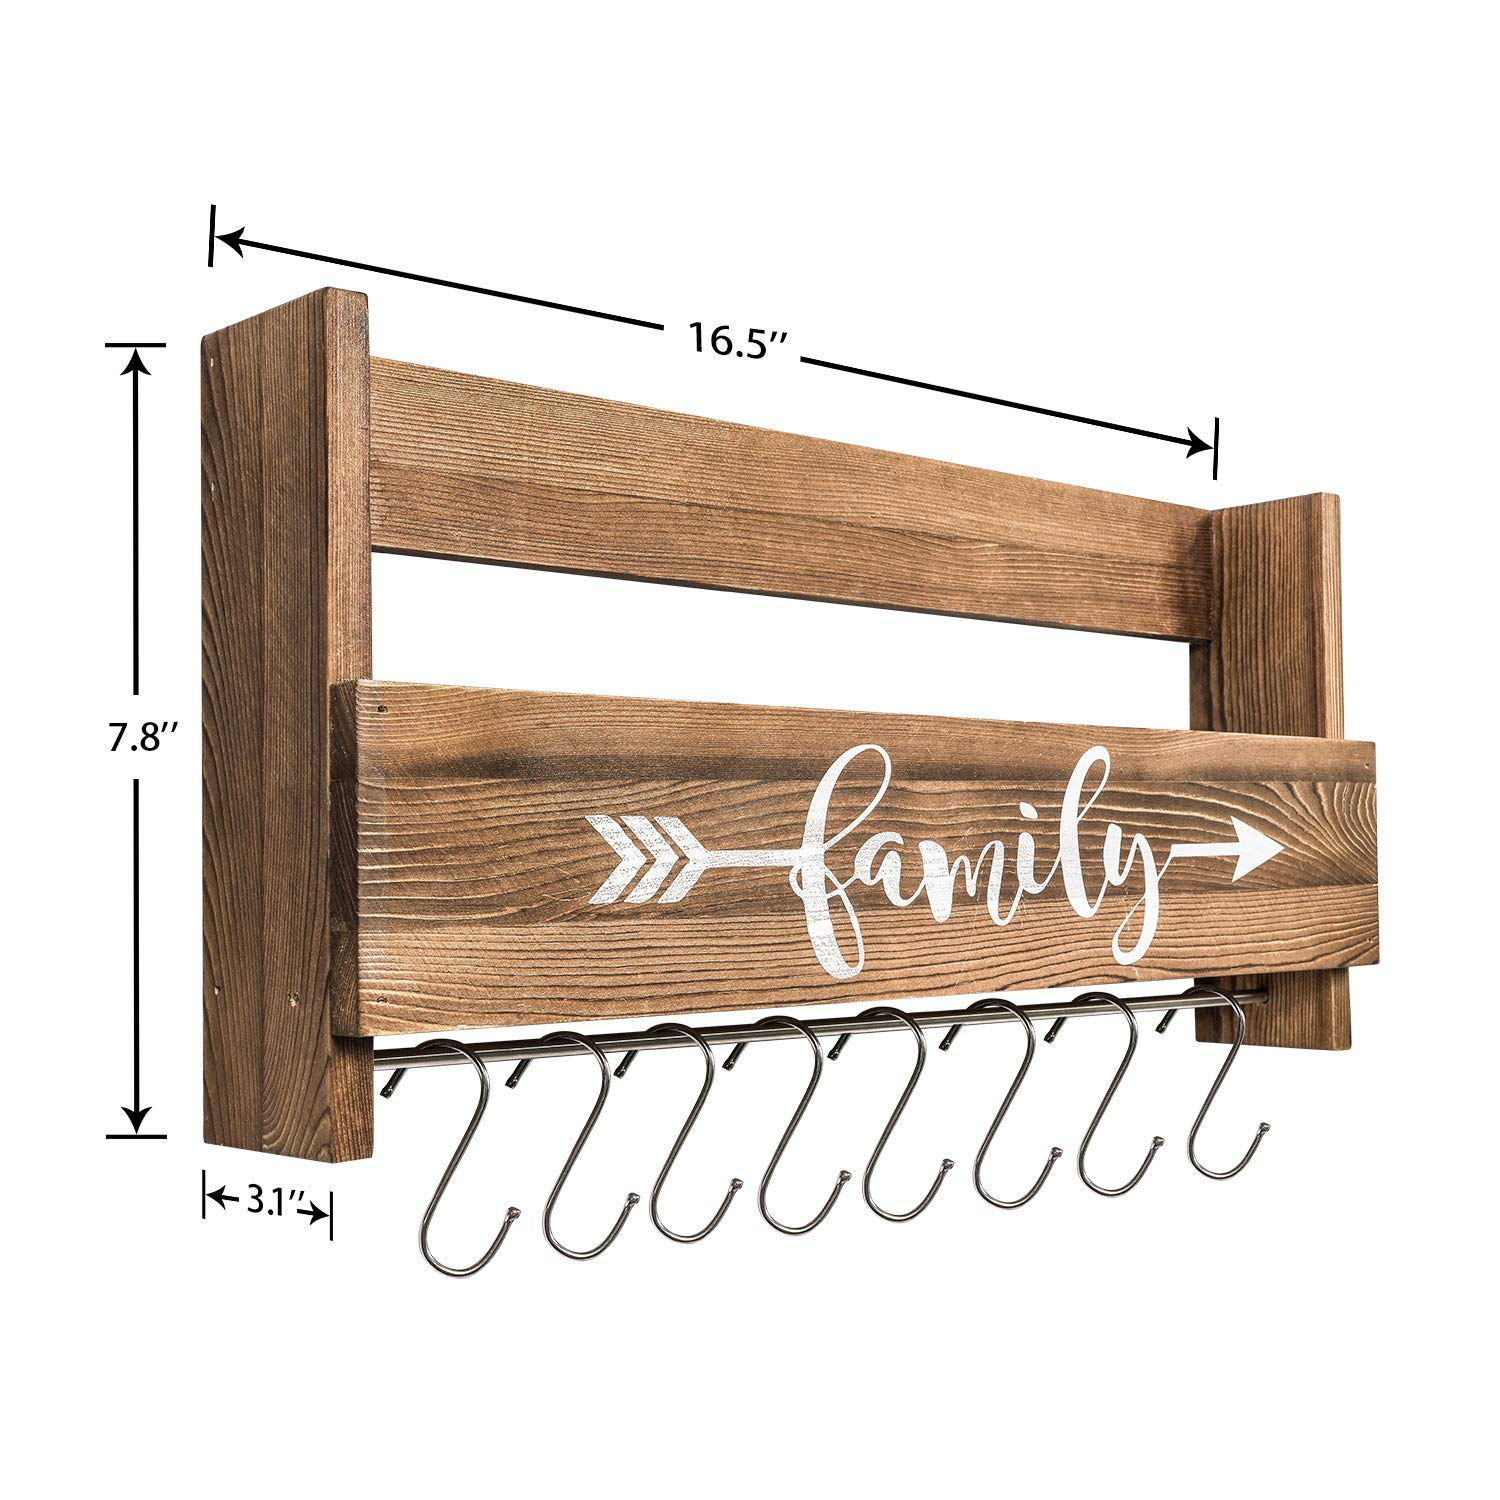 Rustic Wall Storage Shelf Wooden Hanging Coffee Mug Rack With Hooks Buy Wall Mounted Coffee Mug Rack Wooden Mug Rack Decorative Coffee Mug Rack Product On Alibaba Com